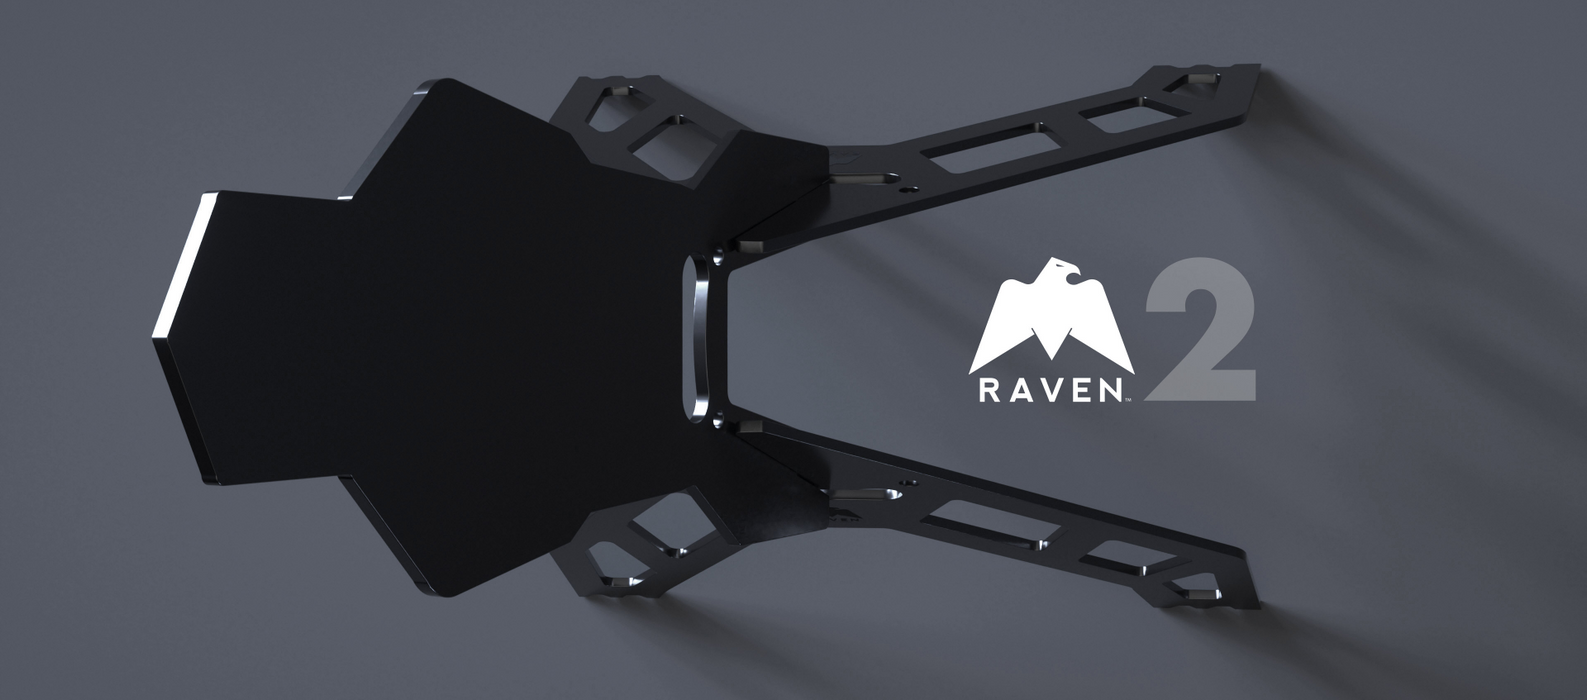 The Raven Target